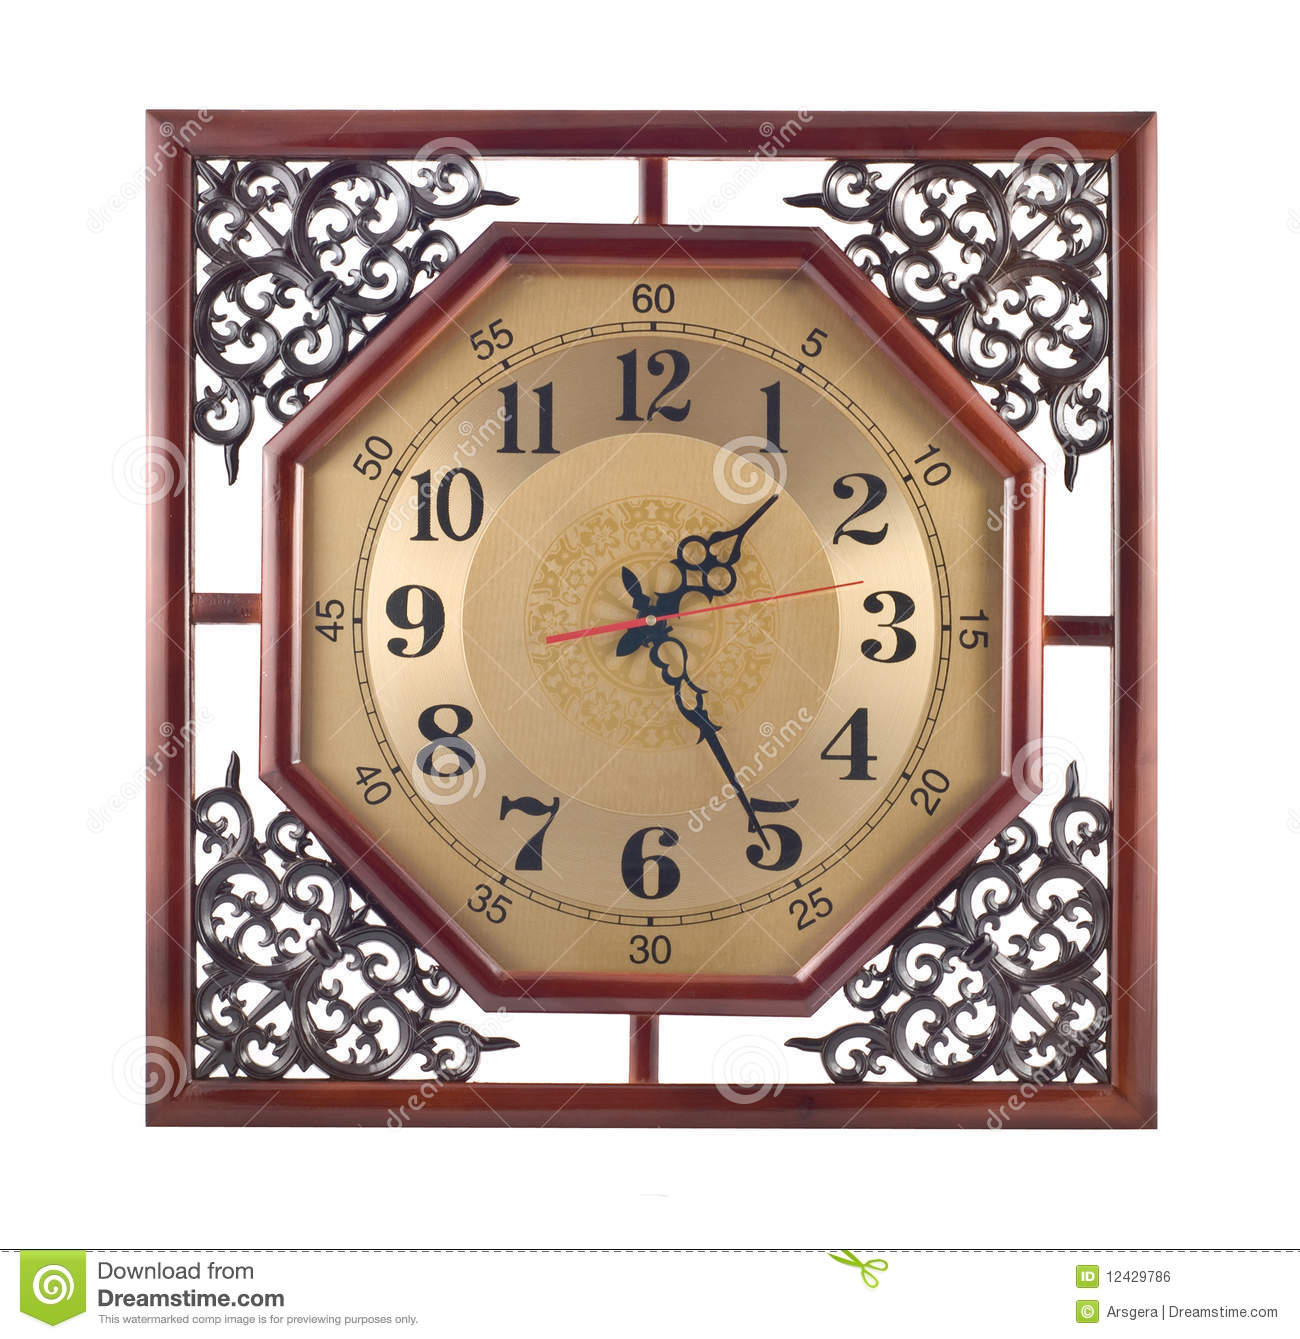 Antique wall clock with carved wooden frame stock photo